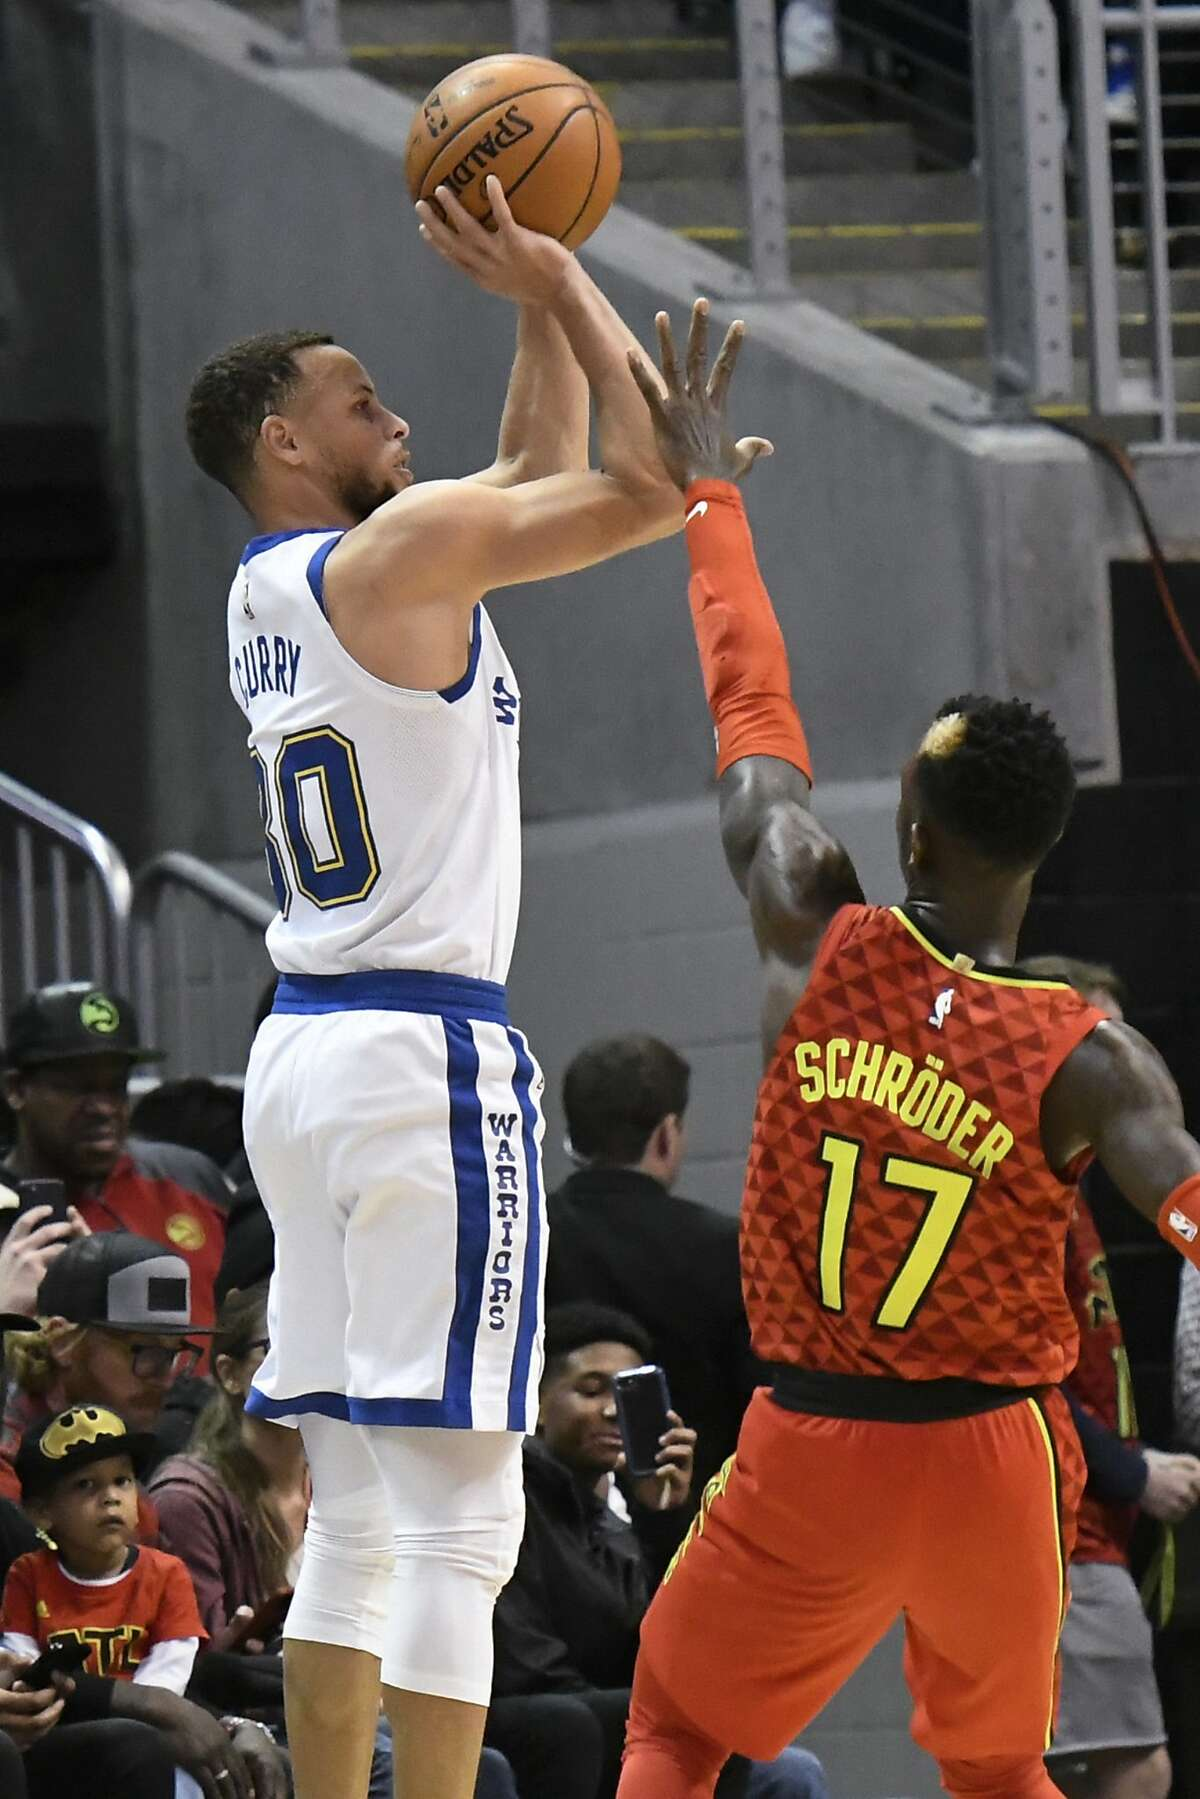 Golden State Warriors guard Stephen Curry shoots from the three-point line as Atlanta Hawks guard Dennis Schroder (17) defends during the first half of an NBA basketball game Friday, March 2, 2018, in Atlanta. (AP Photo/John Amis)